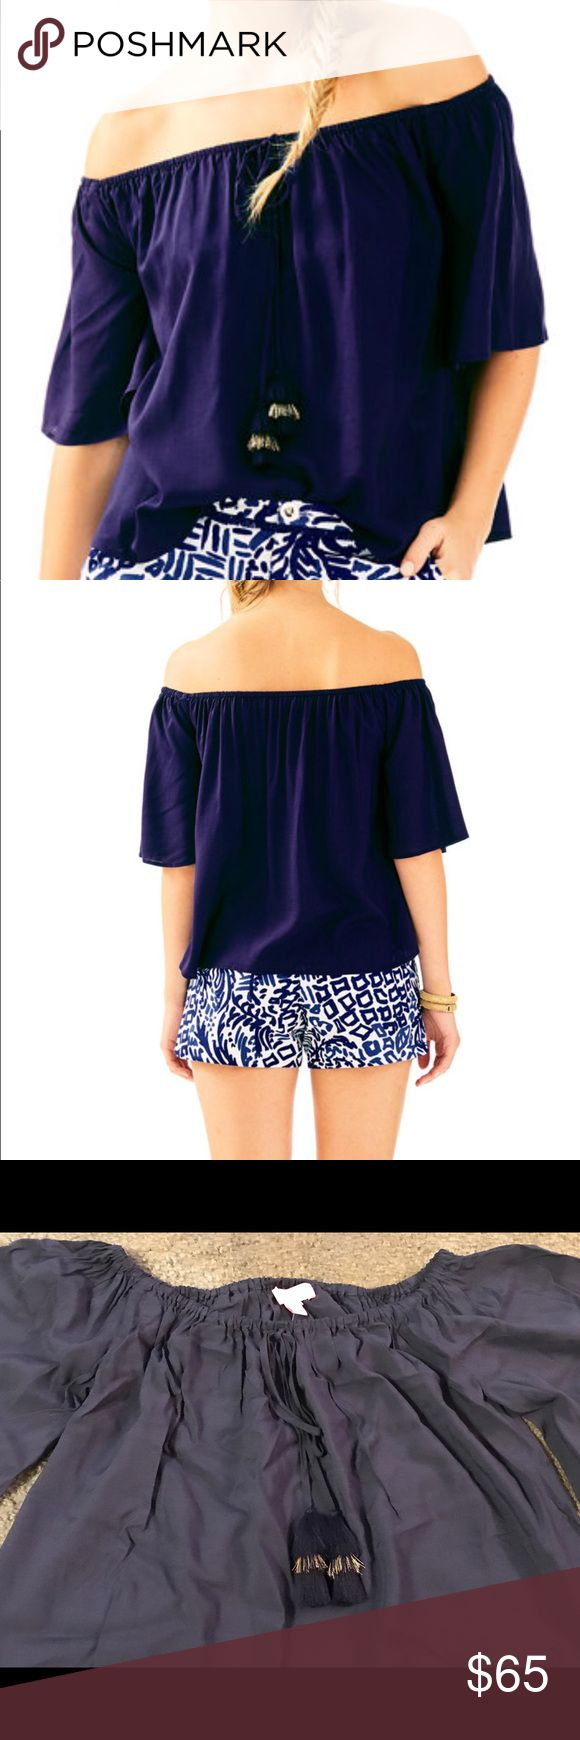 NWTO  LILY PULITZER  Sain Off Shoulder Top  SZ:XS Lily Pulitzer Navy Blue off Shoulder Sain Top in XS just bought a month ago just not my style on me . Top is still in stores at the full retail price . Lilly Pulitzer Tops Crop Tops